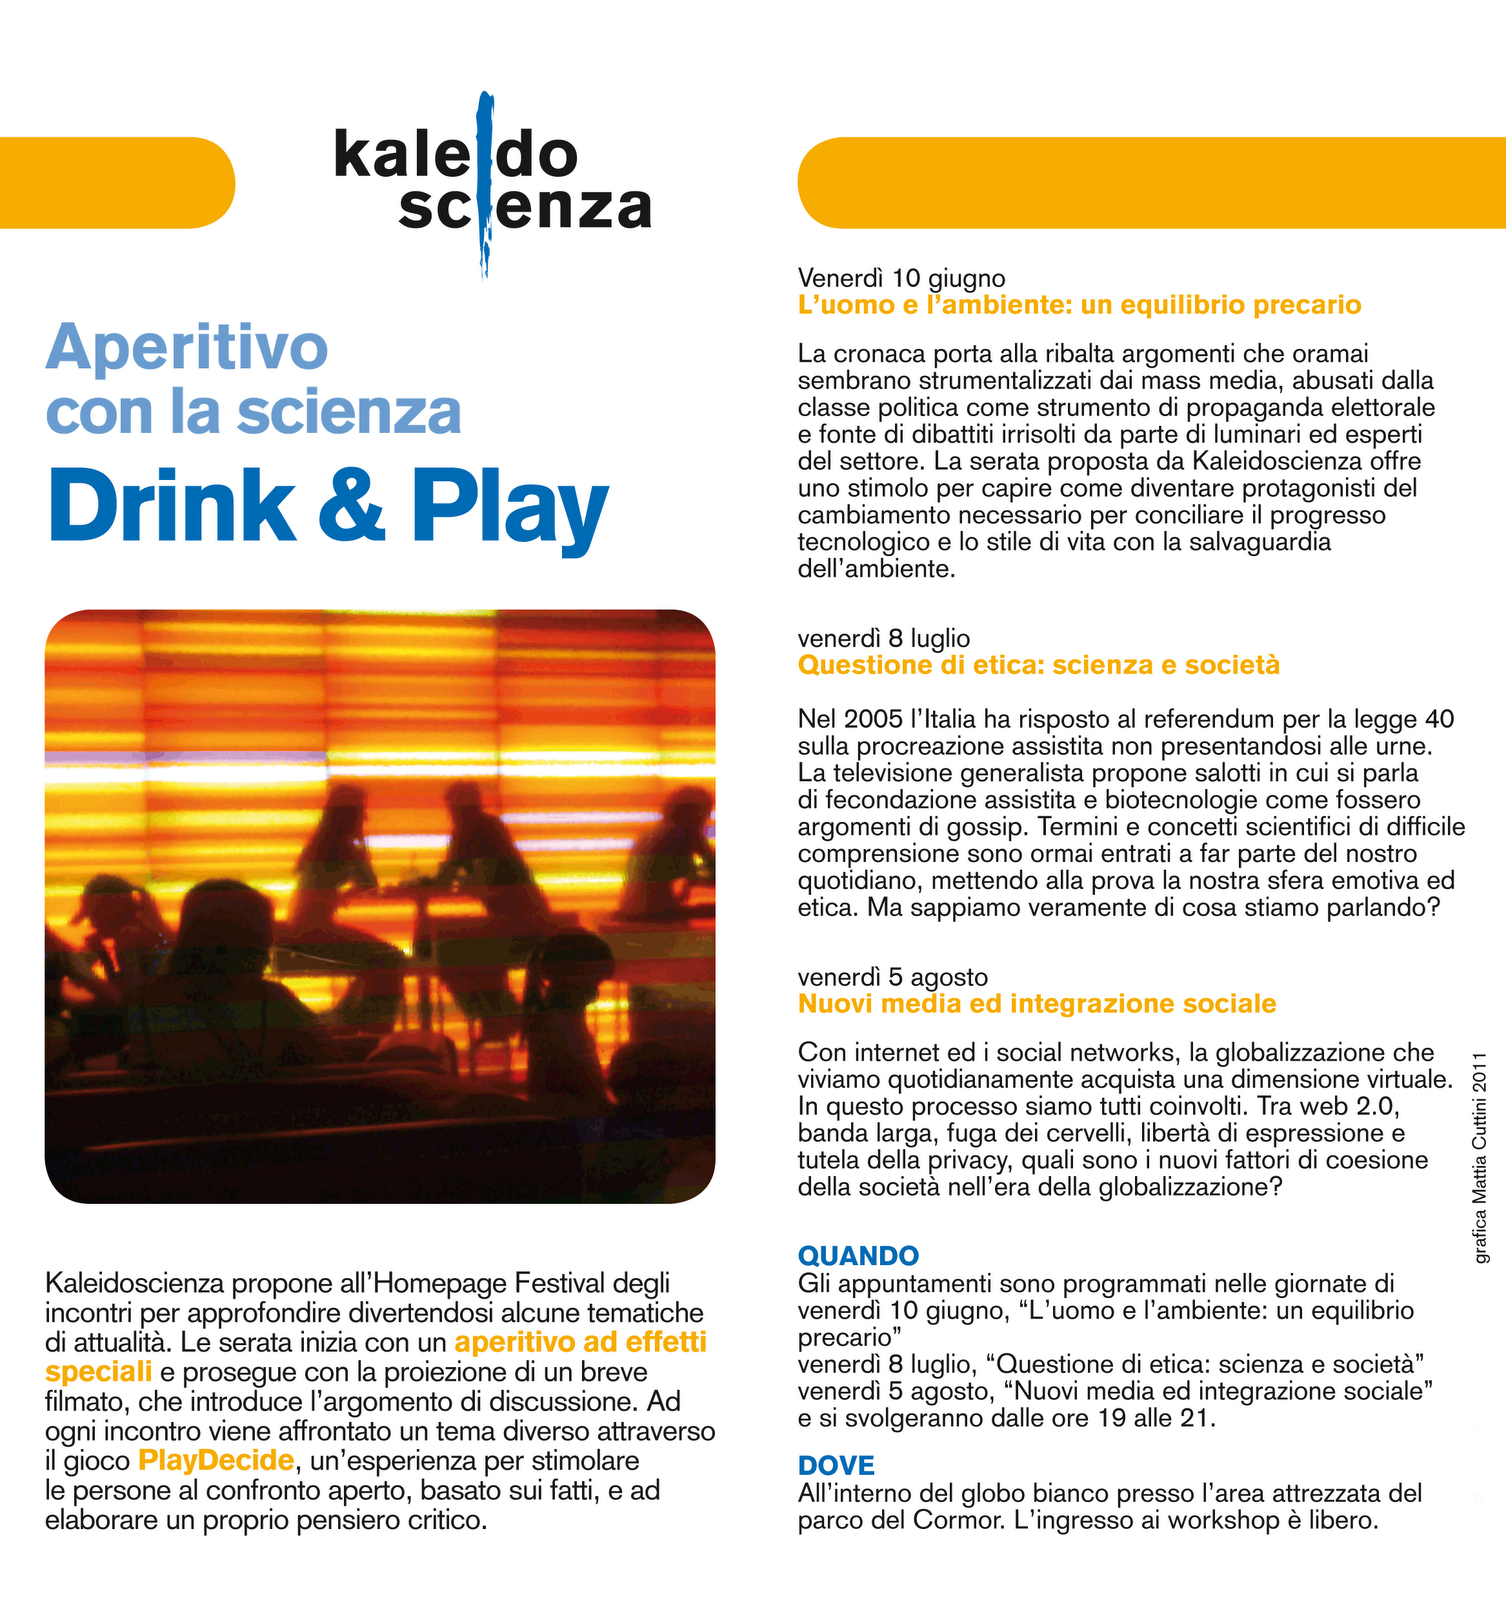 Aperitivo con la scienza - Drink&Play